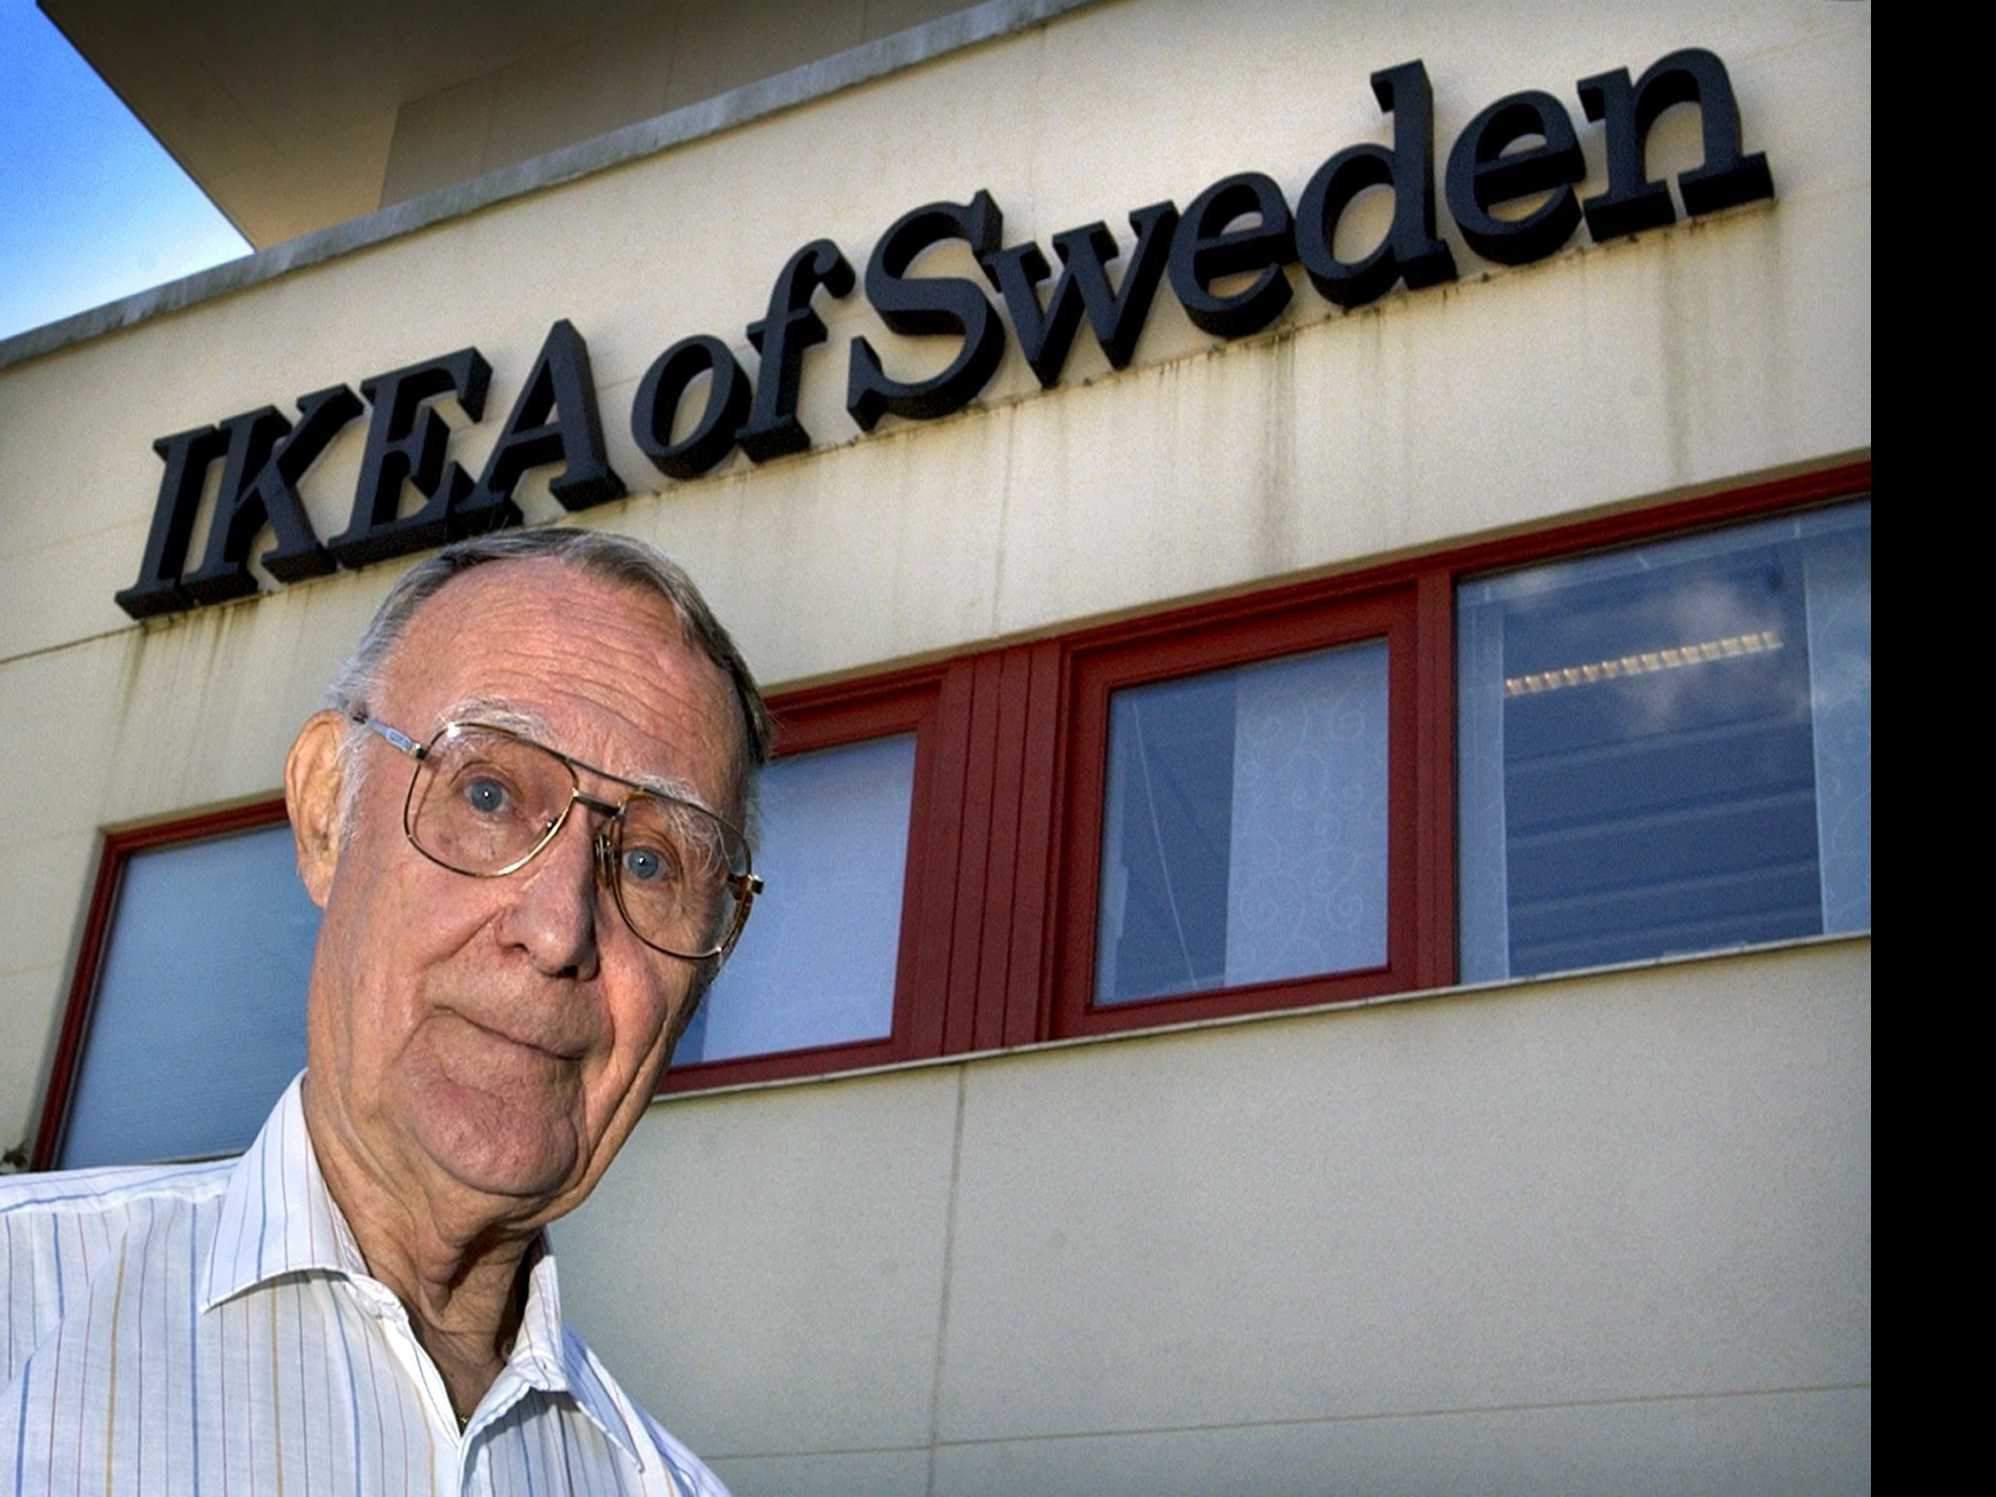 IKEA Says Founder Ingvar Kamprad has Died at 91